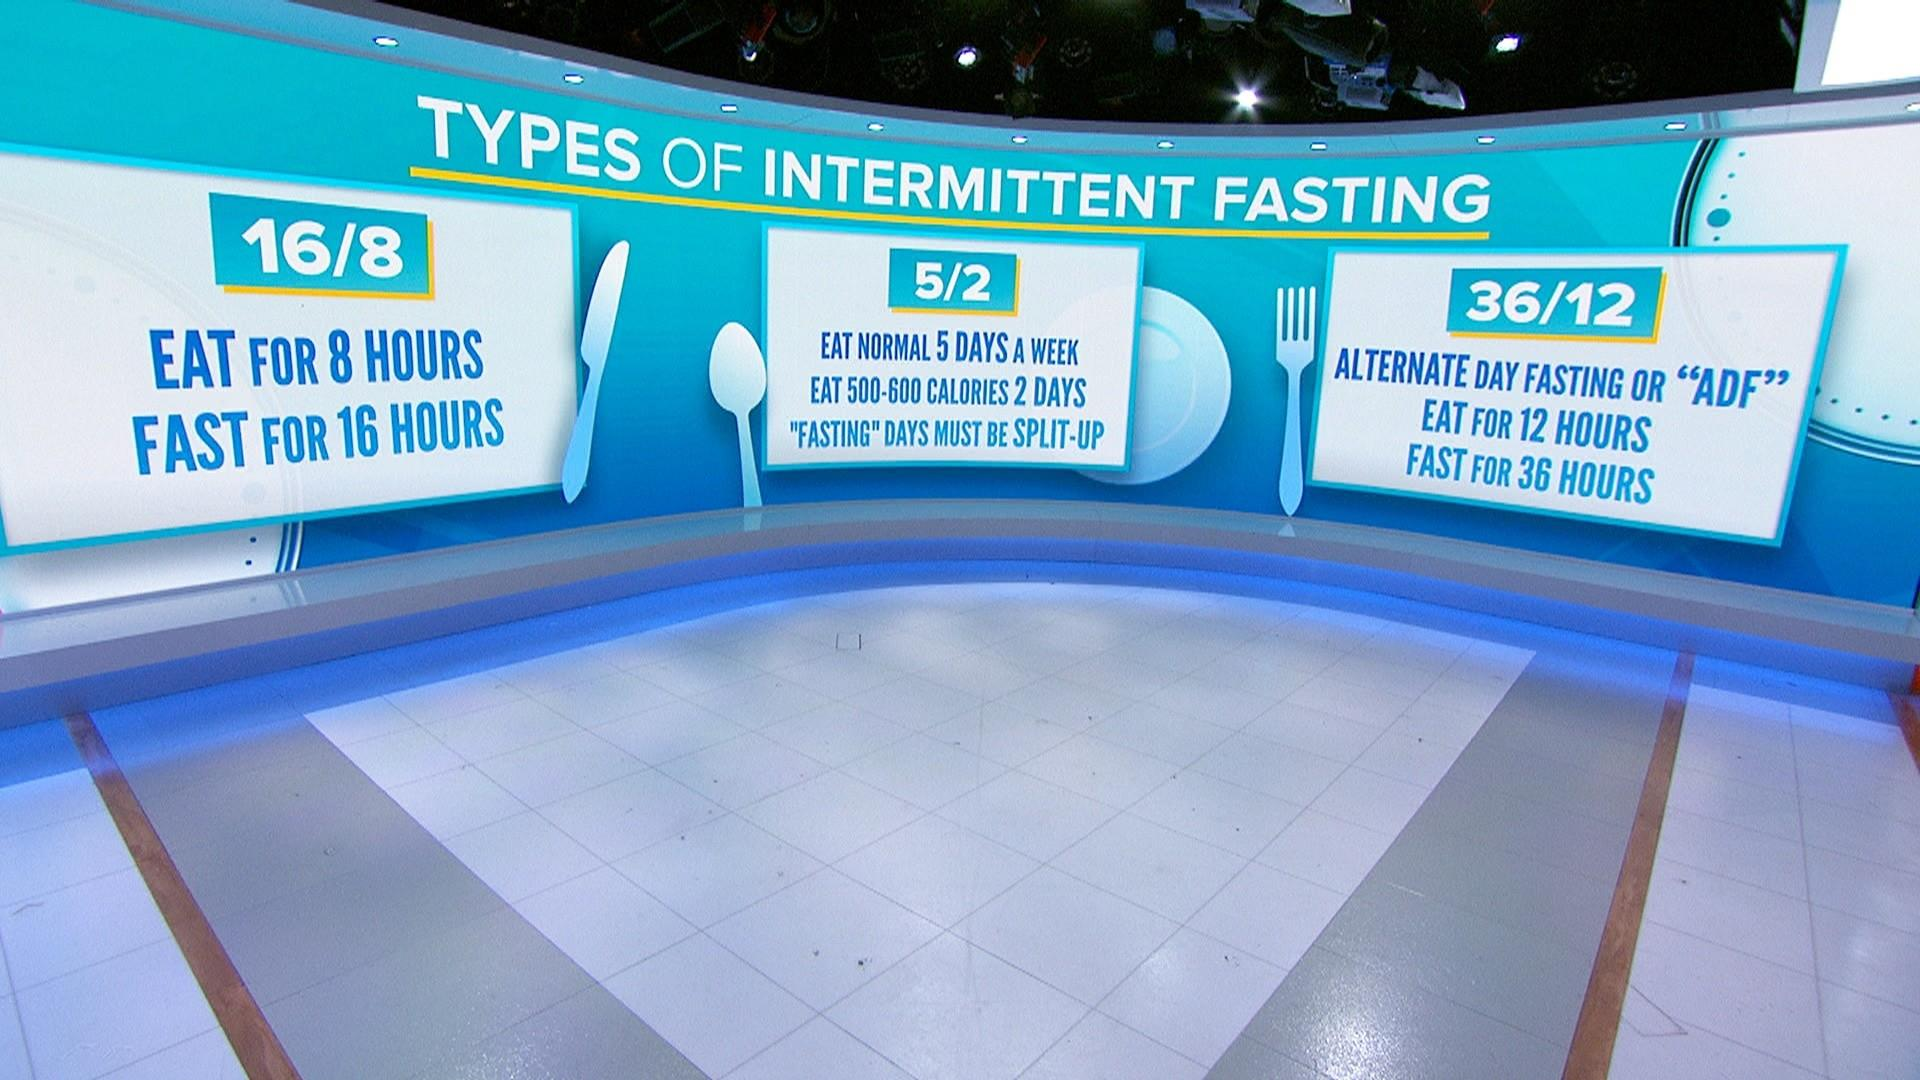 How to lose weight with intermittent fasting: Alternate day